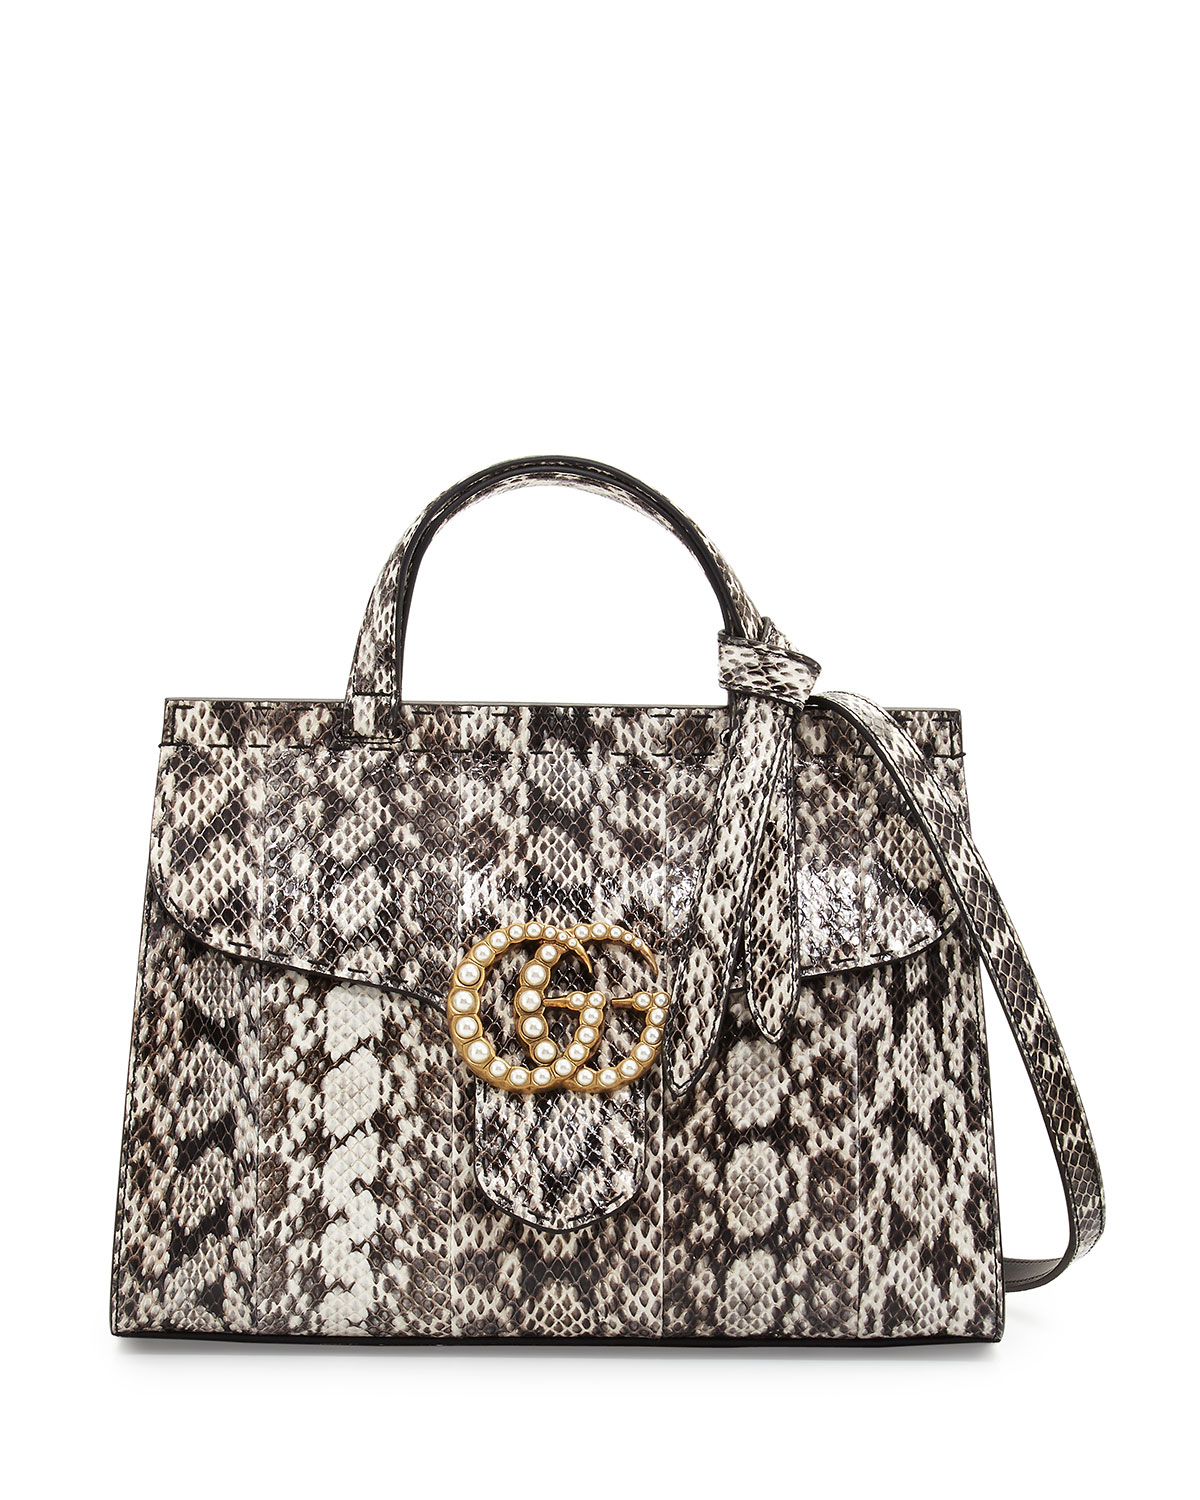 GG Marmont Small Pearly Snakeskin Top-Handle Satchel Bag, Natural